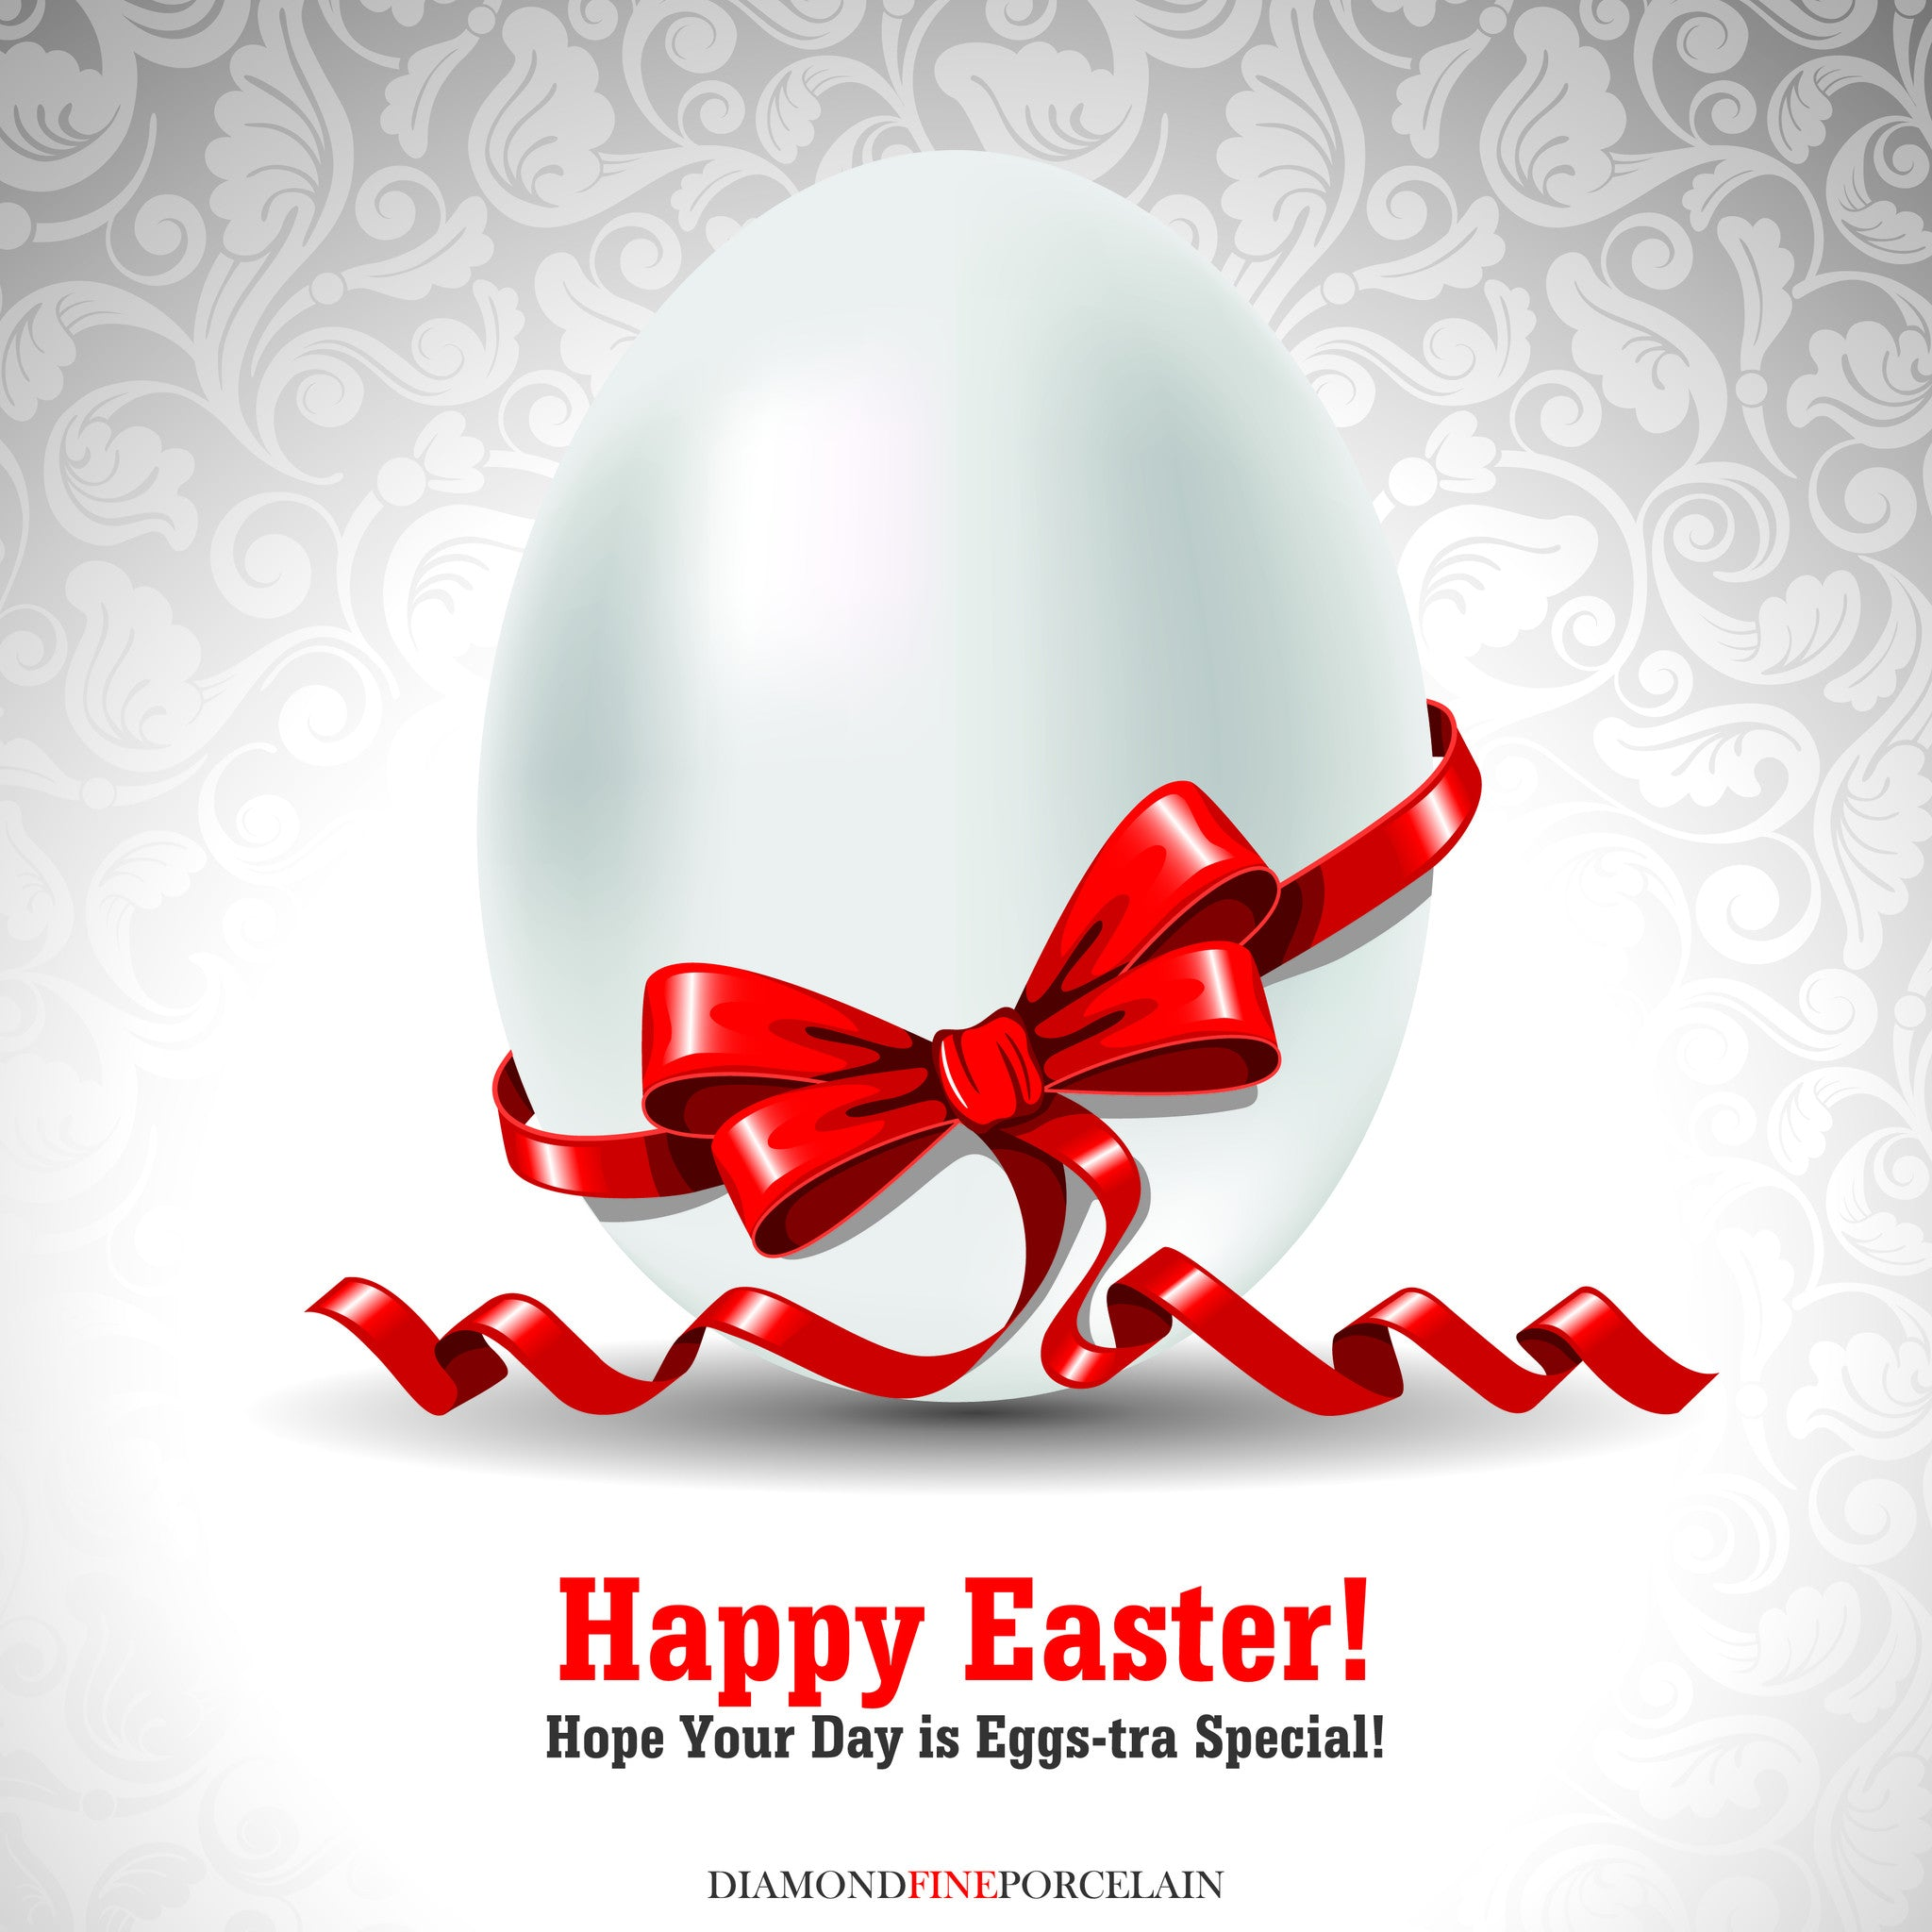 We wish you a happy Easter!